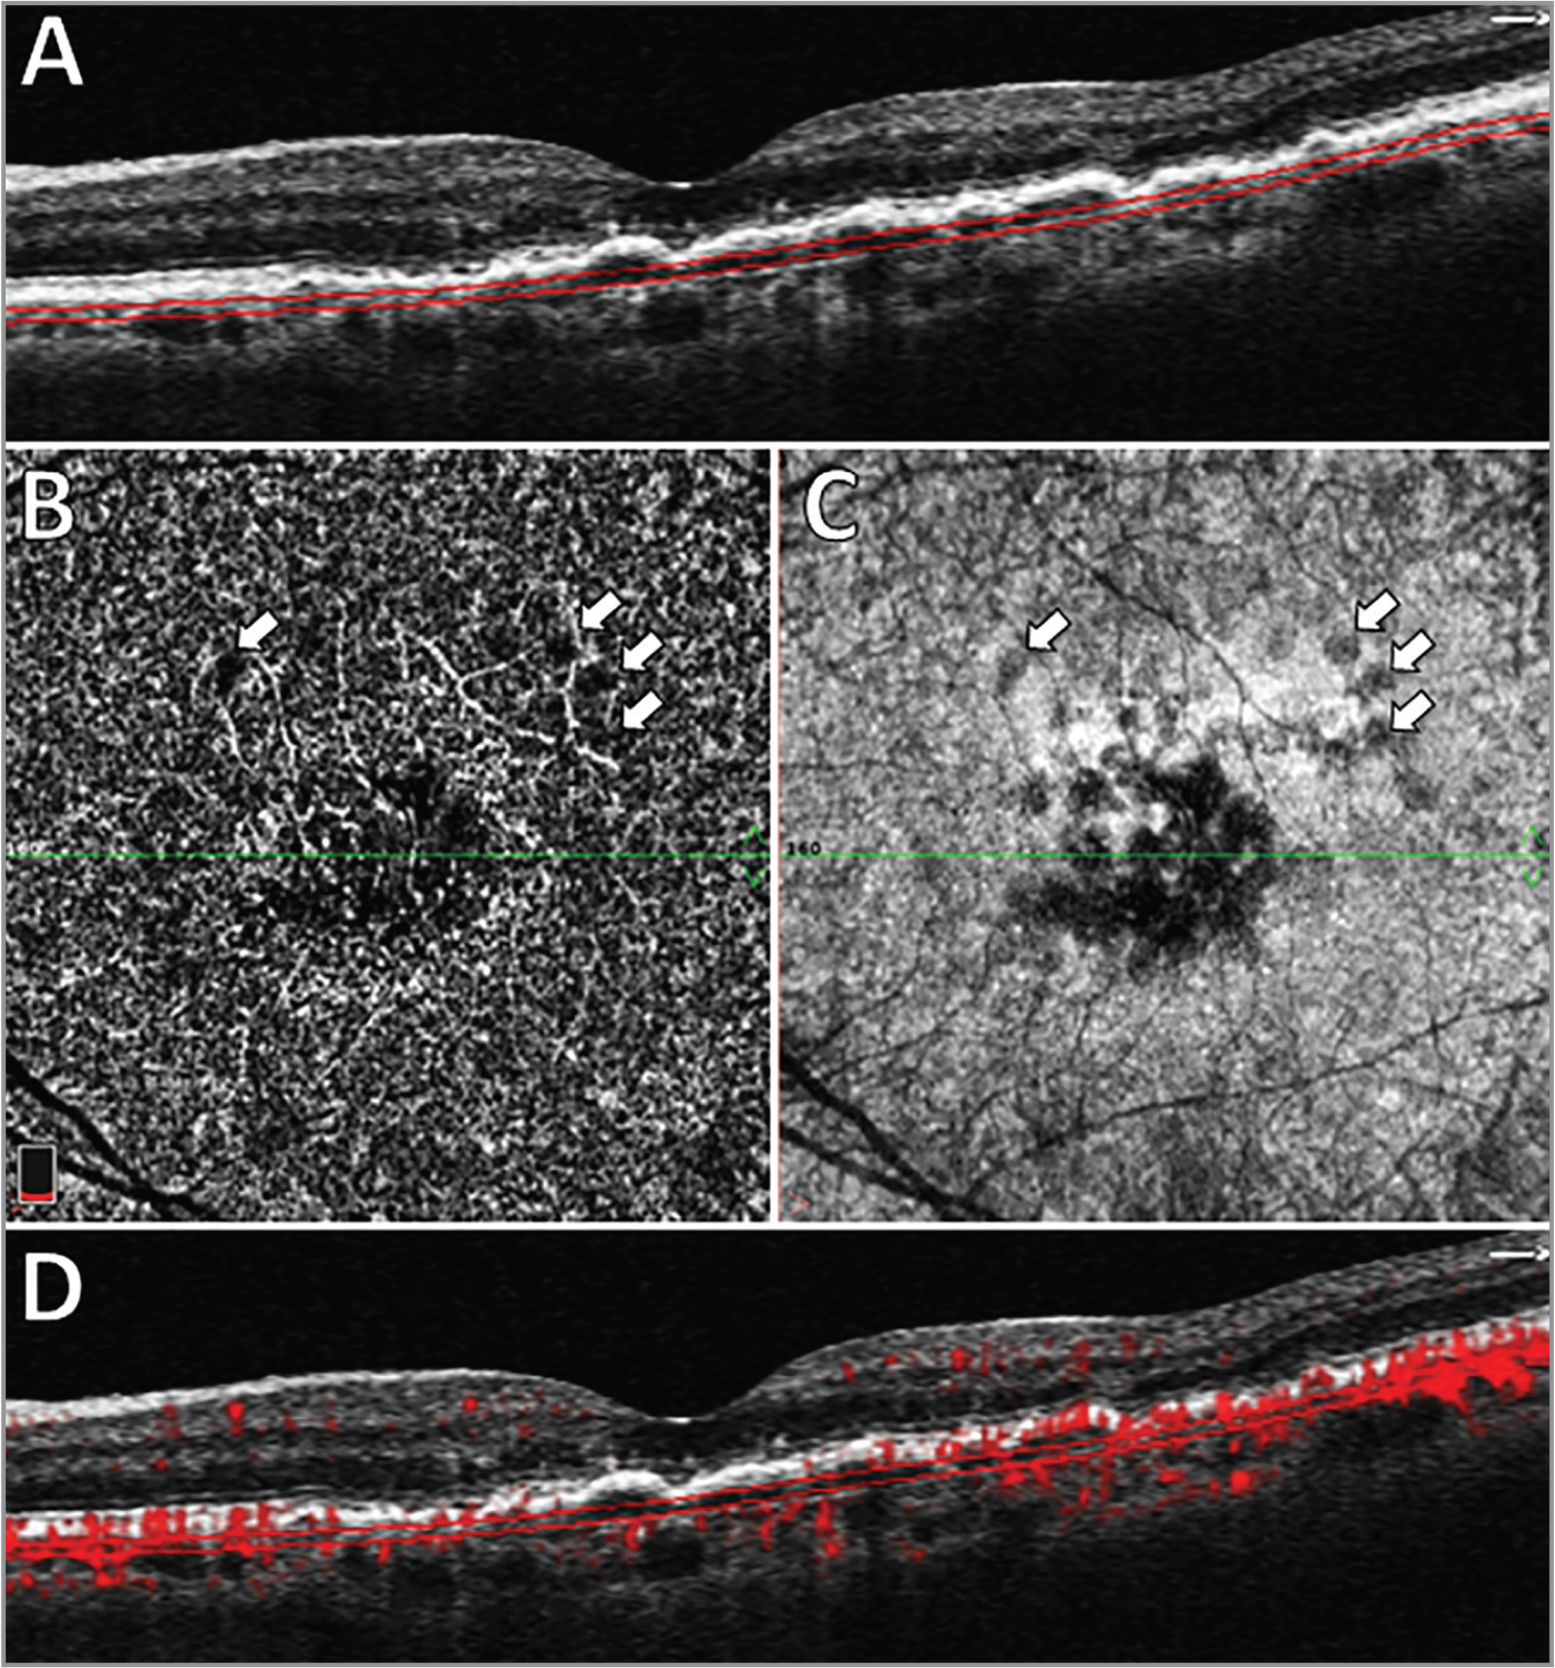 (A) Structural optical coherence tomography (OCT) B-scan shows macular drusen. The parallel red lines indicate the automatic segmentation of the choriocapillaris (CC). (B) En face OCTA flow image of the CC, demonstrating a dark central area and some dark spots surrounding (arrows), which indicates apparent flow impairment. (C) Structural image of the CC, showing a hyporeflective central area, corresponding to an attenuation of the signal from the CC, probably caused by the drusen. (D) OCT angiography B-scan demonstrating sparse areas of decreased decorrelation under the drusen. The white arrows represent the same anatomical point as in B and C, corresponding to signal impairment related to the drusen.